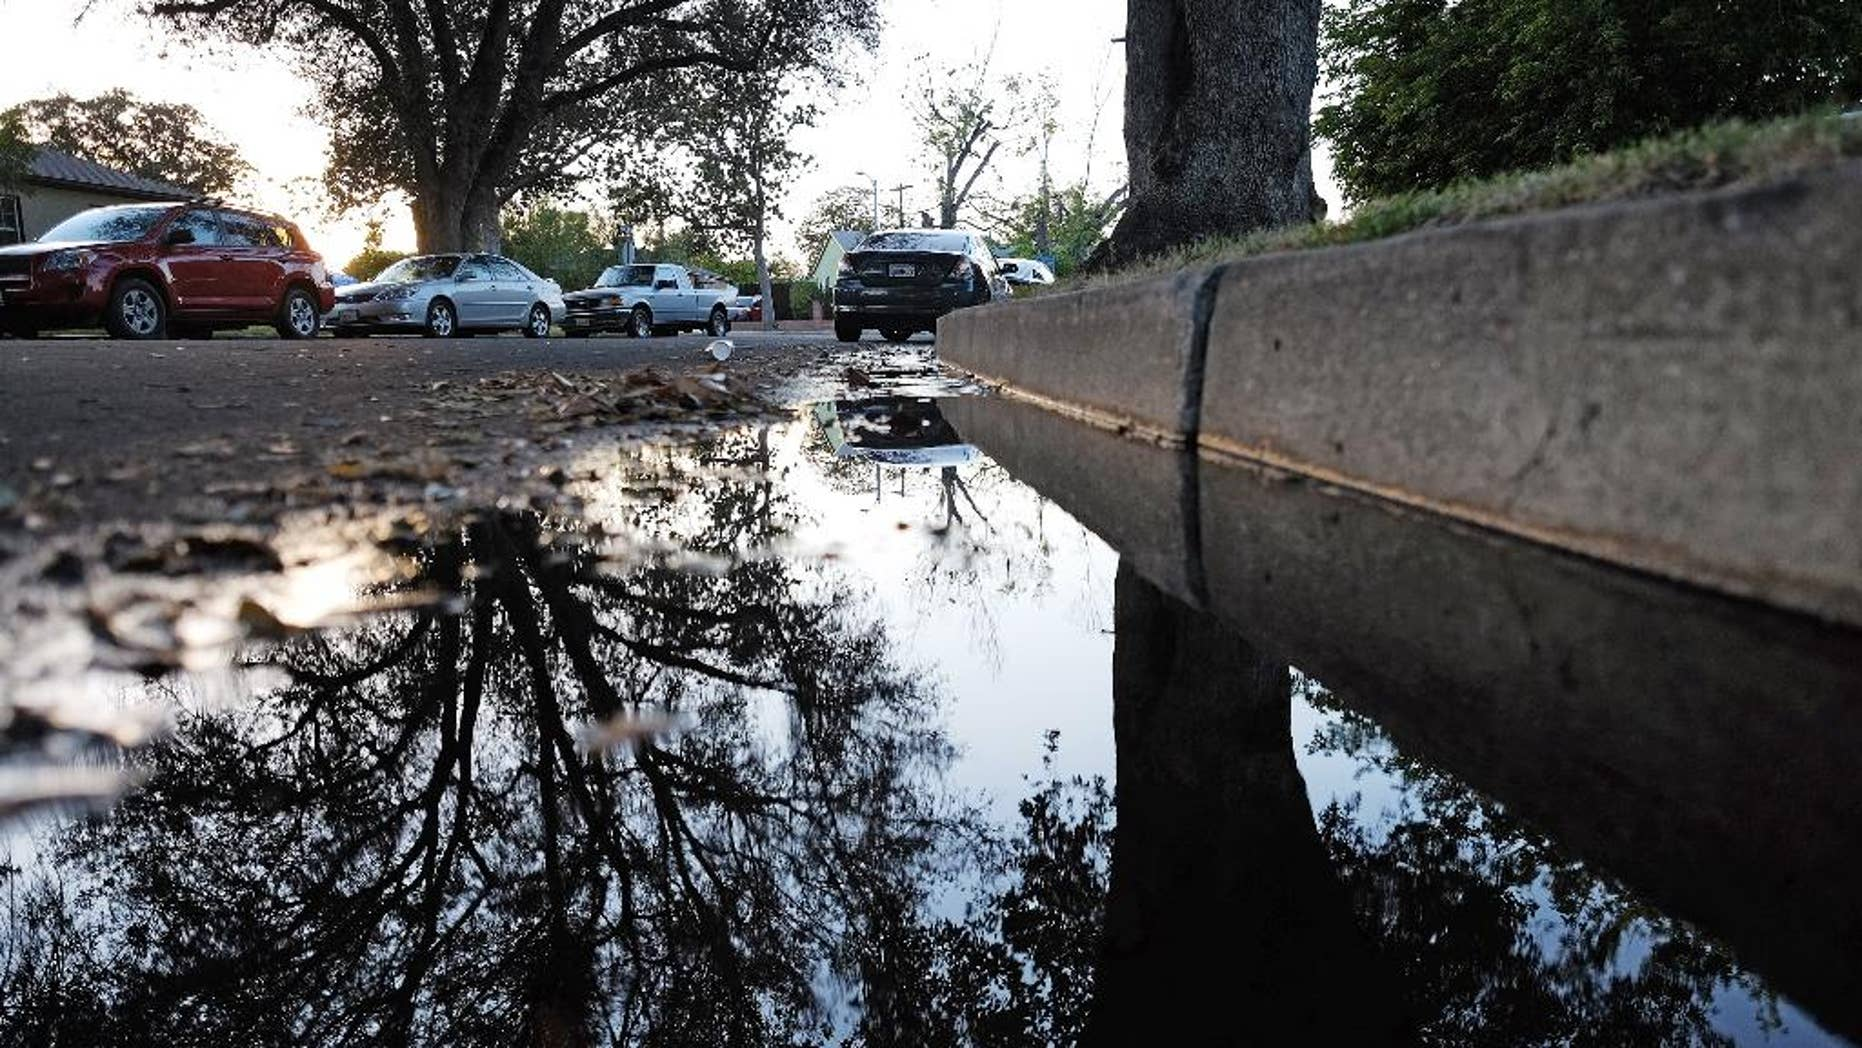 This Sunday, April 13, 2015 photo shows water from a leaking pipe flowing along the curbside of a street in Los Angeles. Southern California's water wholesaler is considering a proposal that would reduce the amount of water it delivers to more than two dozen cities and agencies in the wake of an ongoing drought. A board committee of the Metropolitan Water District meets Monday, April 13, to mull a plan to cut water deliveries by 15 percent beginning this summer.  (AP Photo/Richard Vogel)